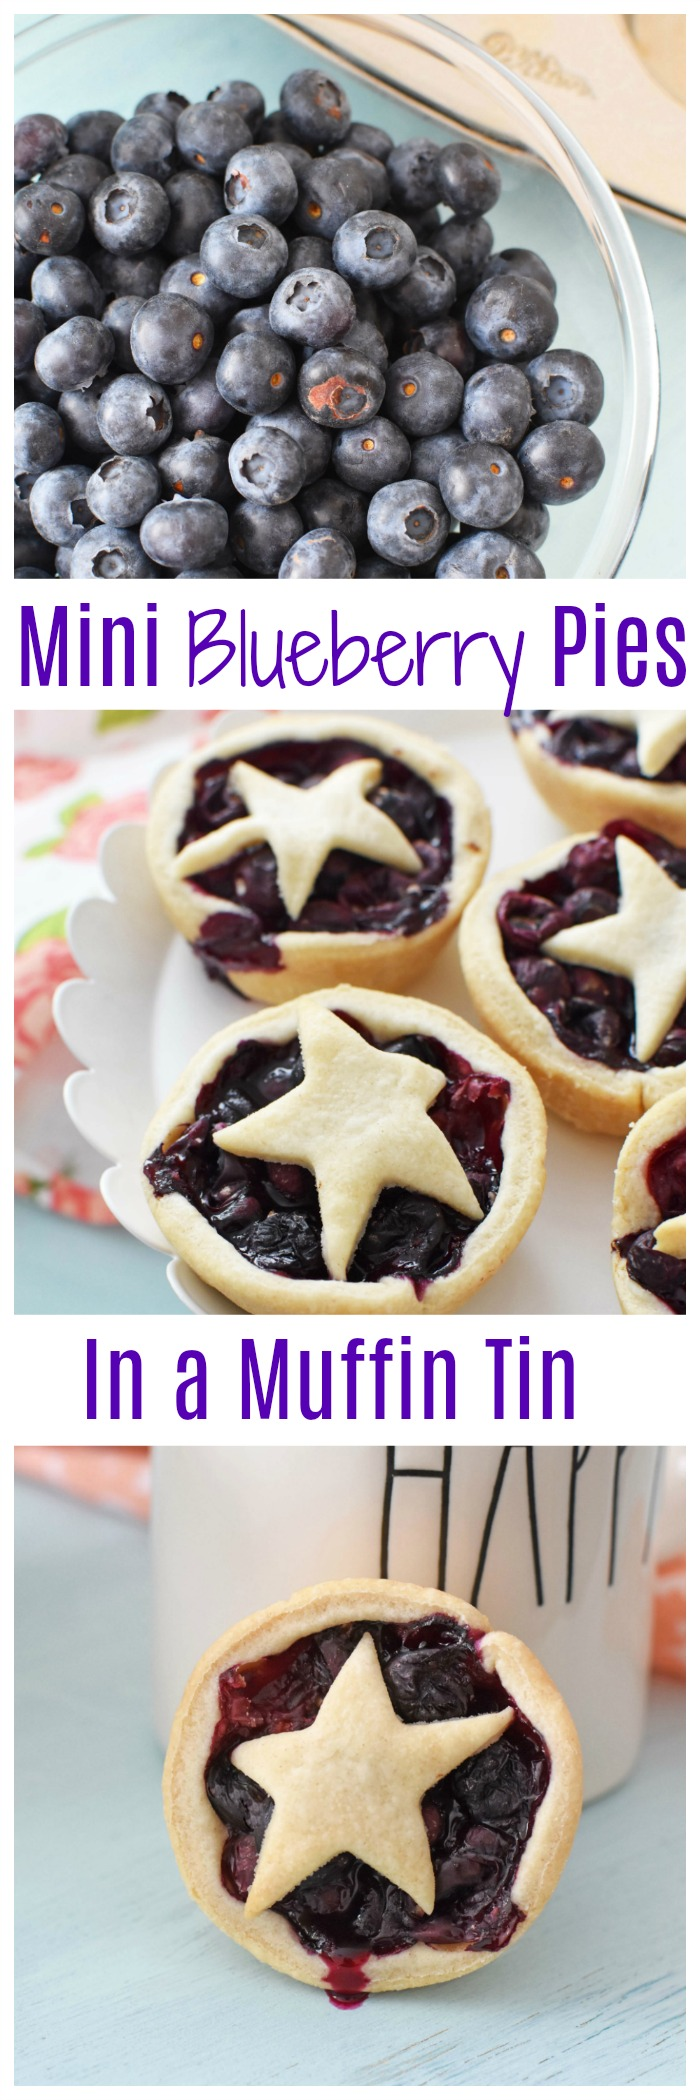 Mini Blueberry Pies Made in a Muffin Tin-These mini blueberry pies feature a homemade lard crust and are the perfect size for parties and snacking! The sweet flavor of the warm berries pair nicely with this delicious and easy lard pie crust.